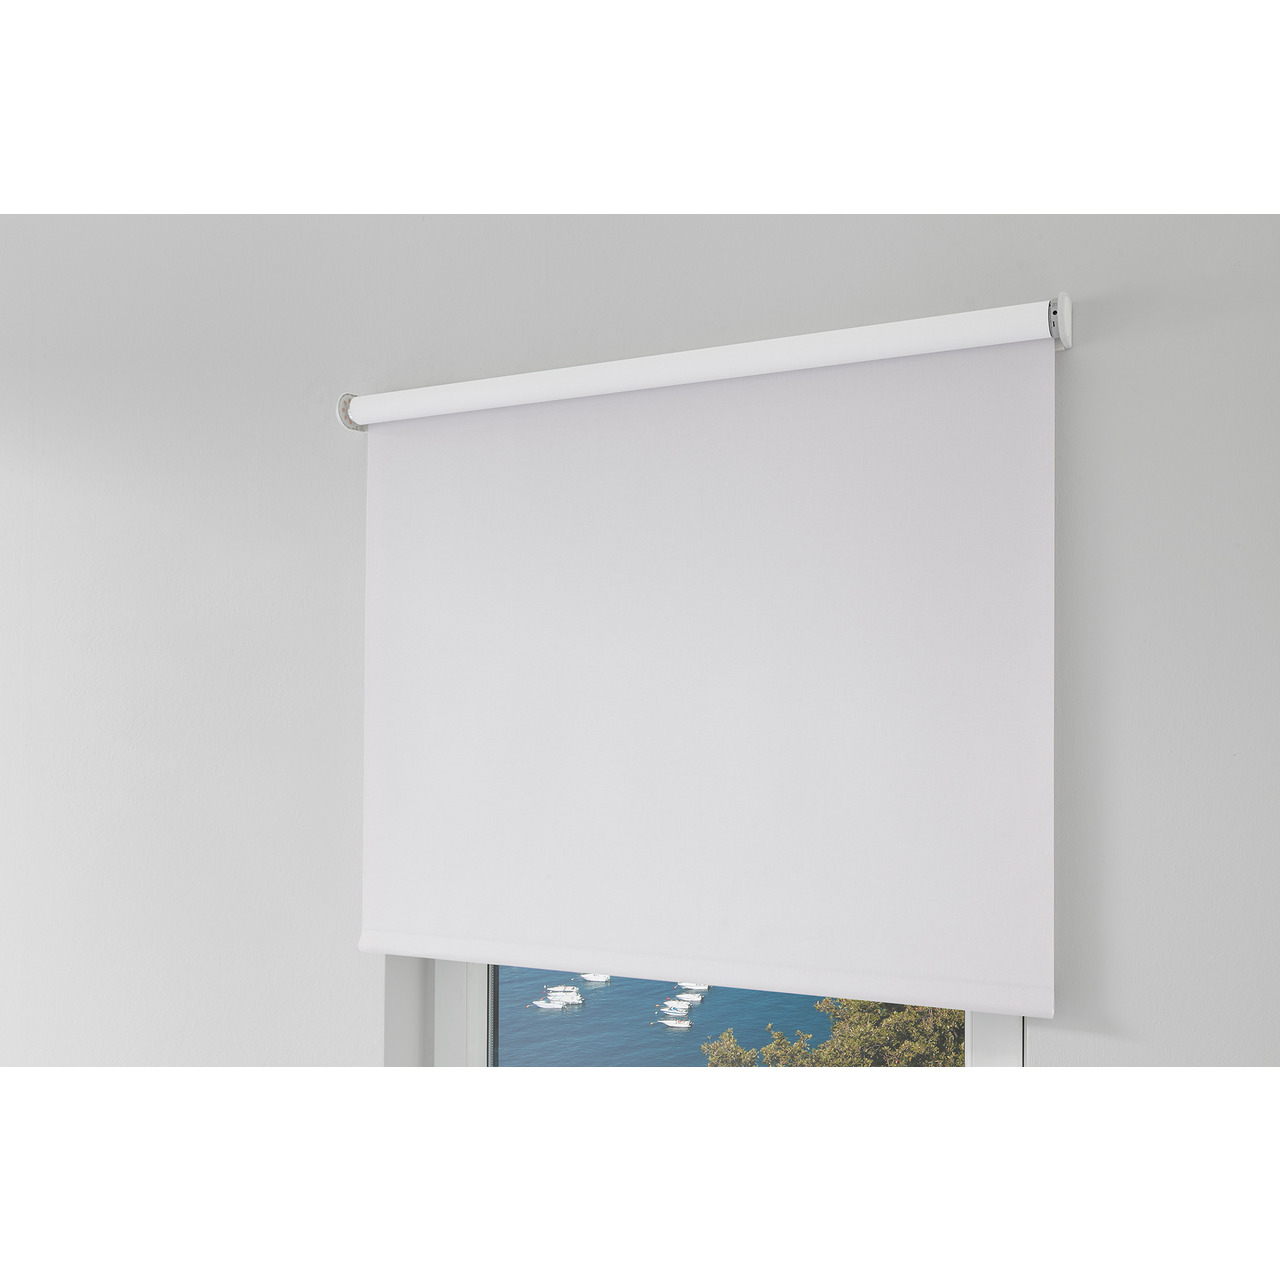 Erfal Smartcontrol Rollo by Homematic IP- 120 x 230 cm (B x H)- blickdicht abdunkelnd weiss